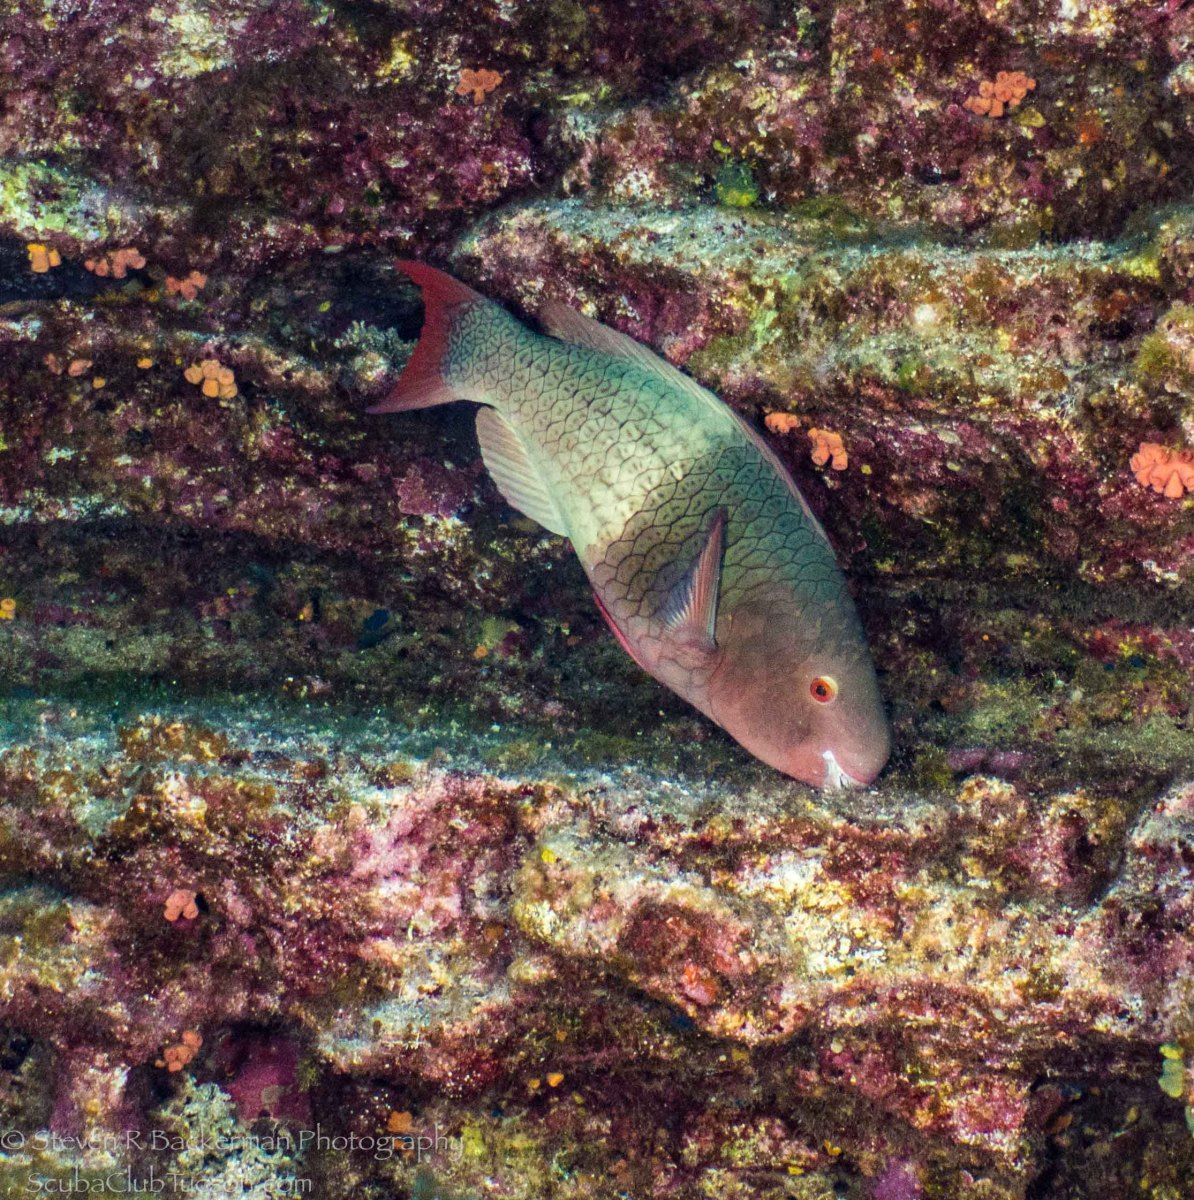 Bicolor Parrotfish Initial Phase-1162